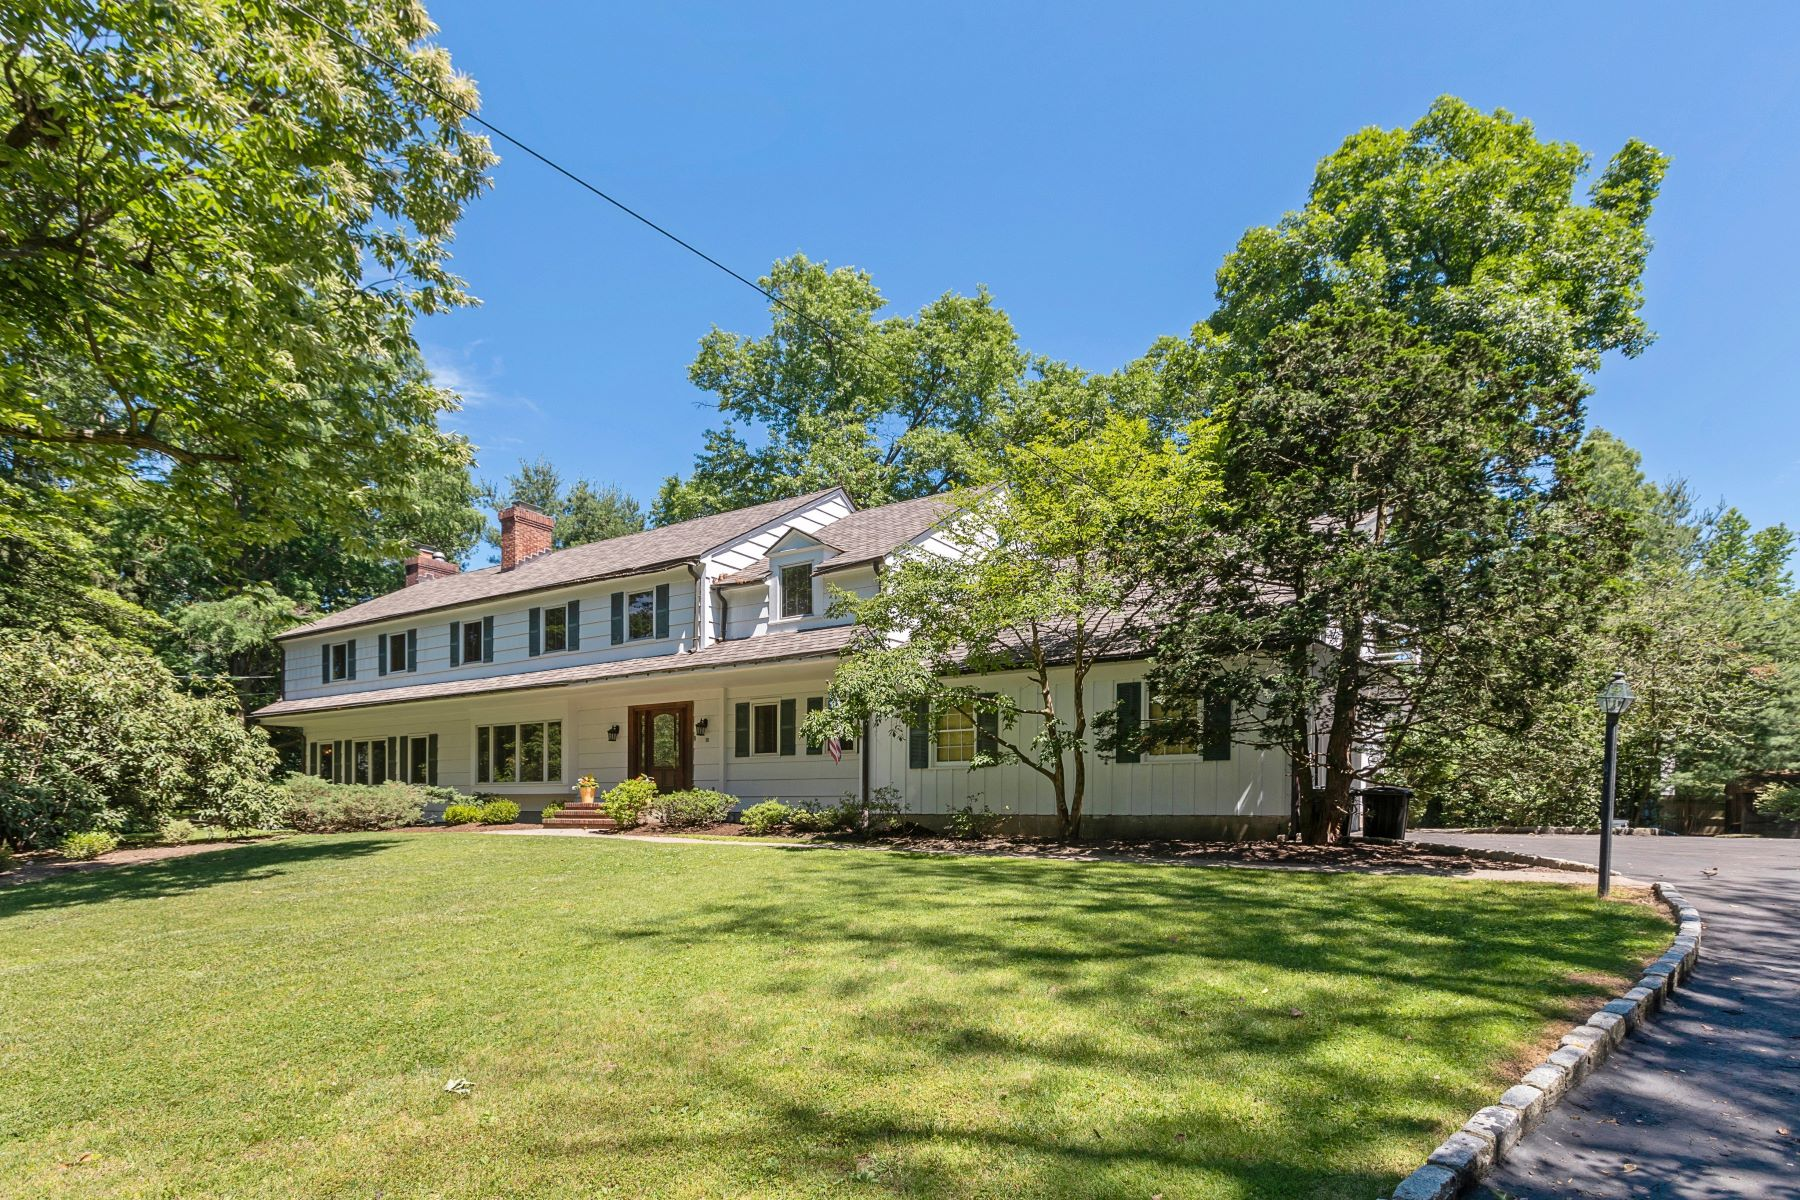 Single Family Home for Sale at Classic Colonial 18 Timber Acres Road, Short Hills, New Jersey 07078 United States